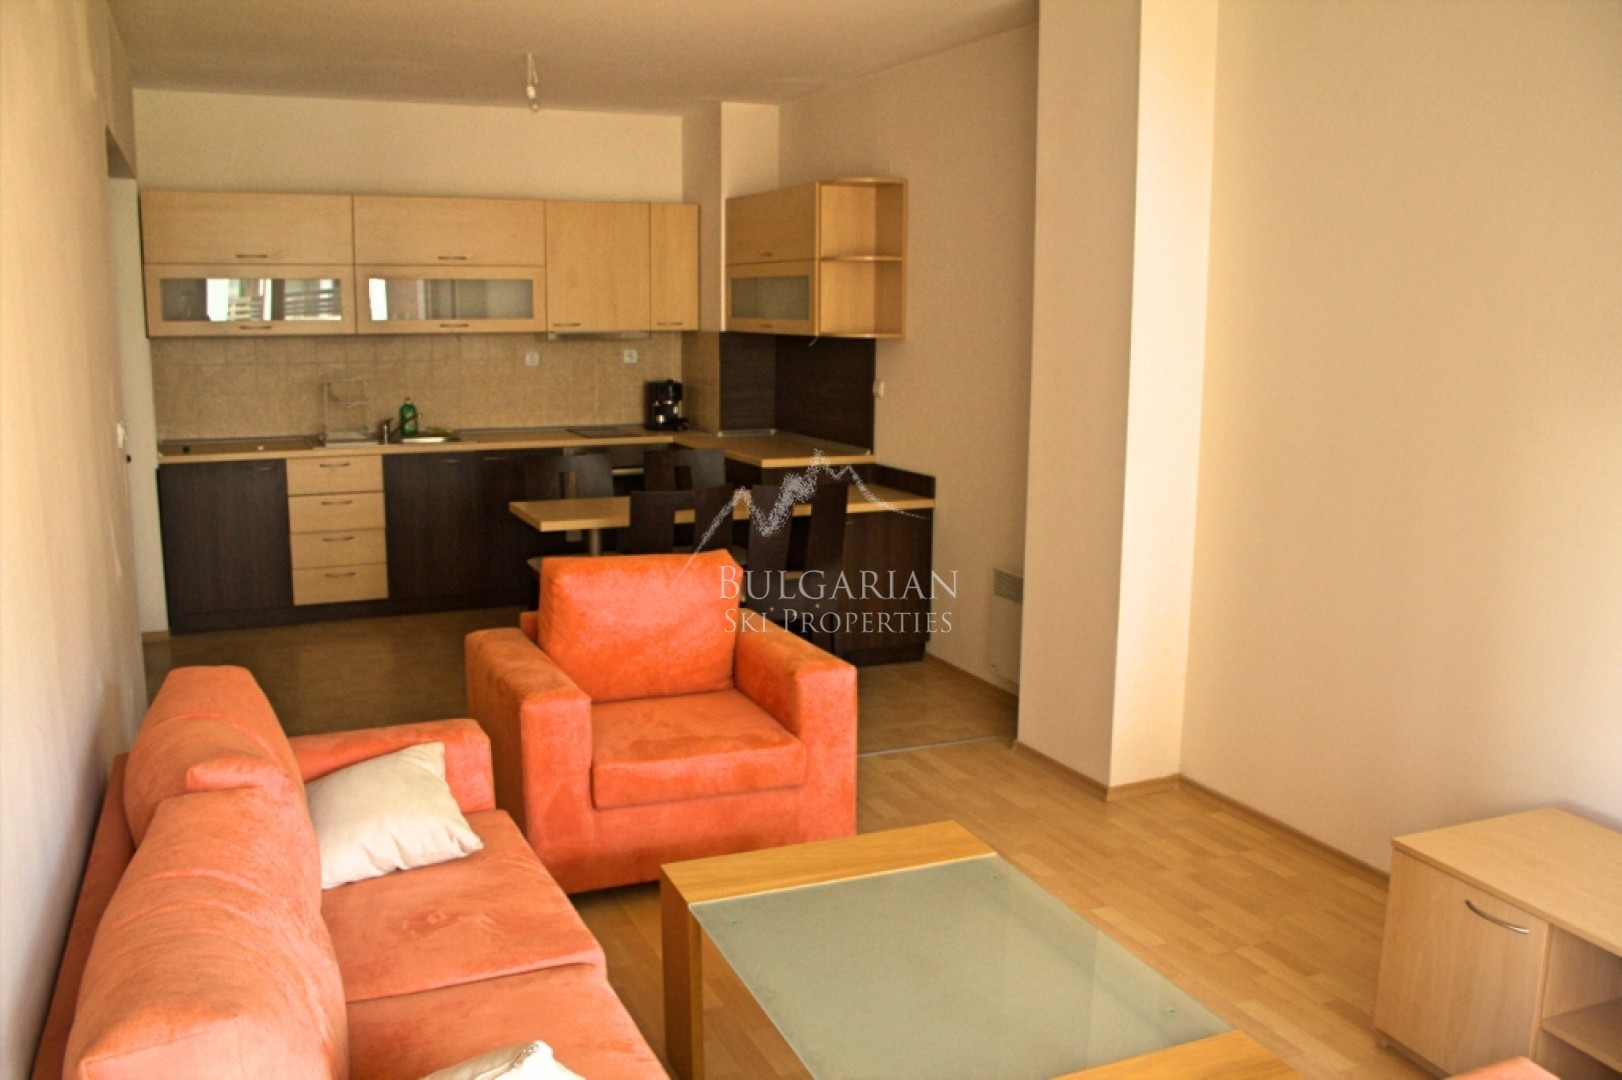 Bansko: spacious one bedroom apartment for sale